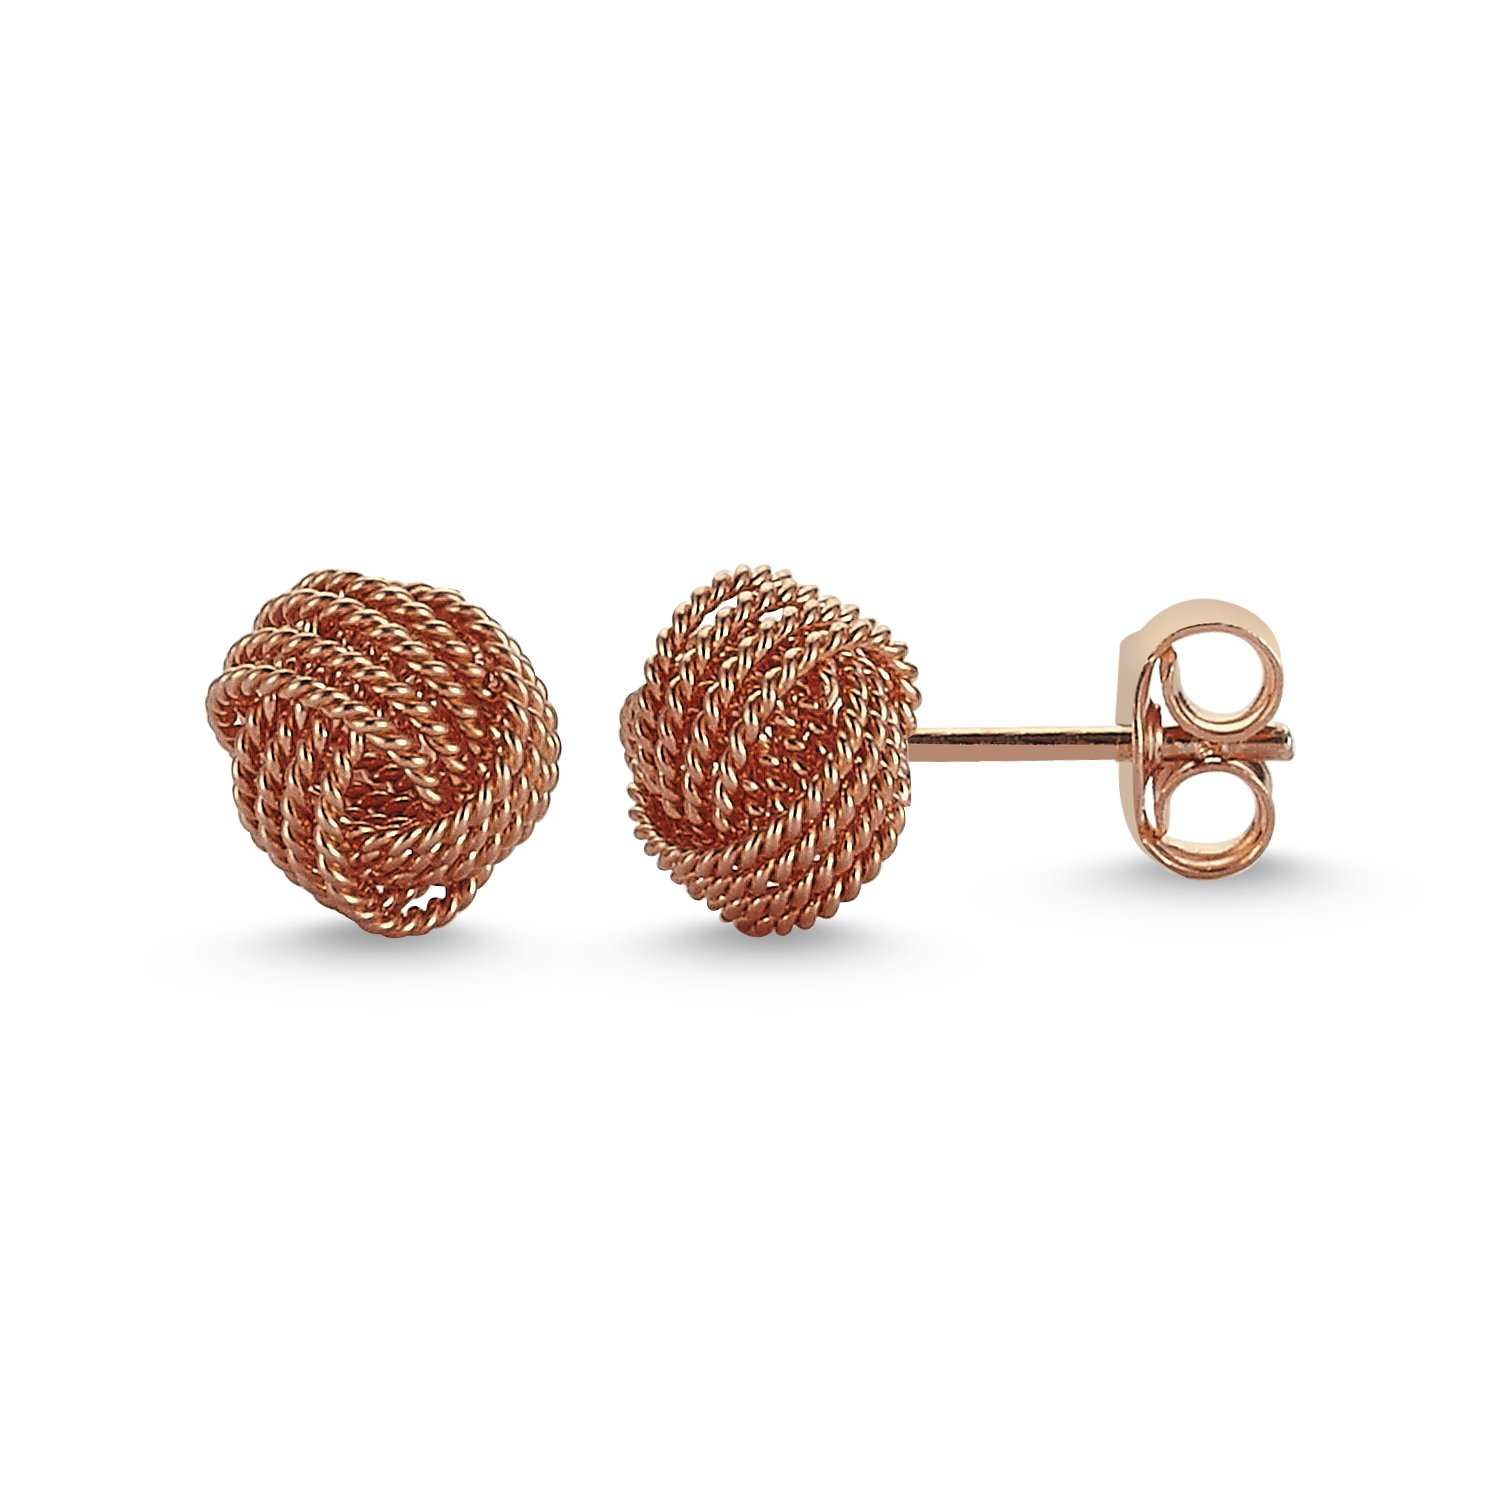 925 Solid Sterling Silver High Polished Braided 8mm KNOT Stud Earrings Rose Gold